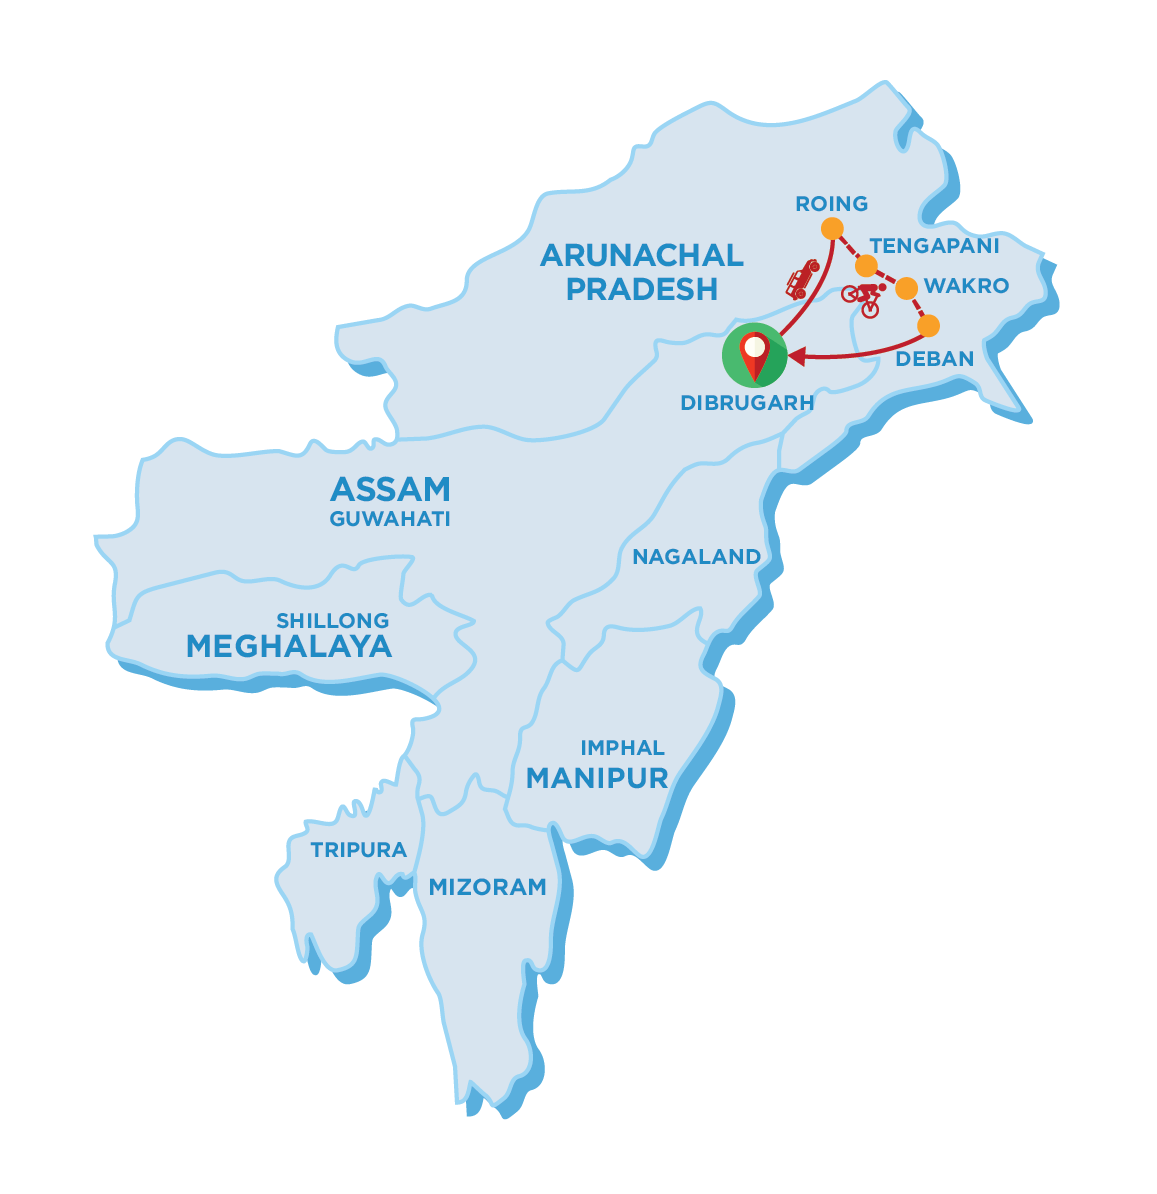 Tour Map of Eastern Arunachal Pradesh